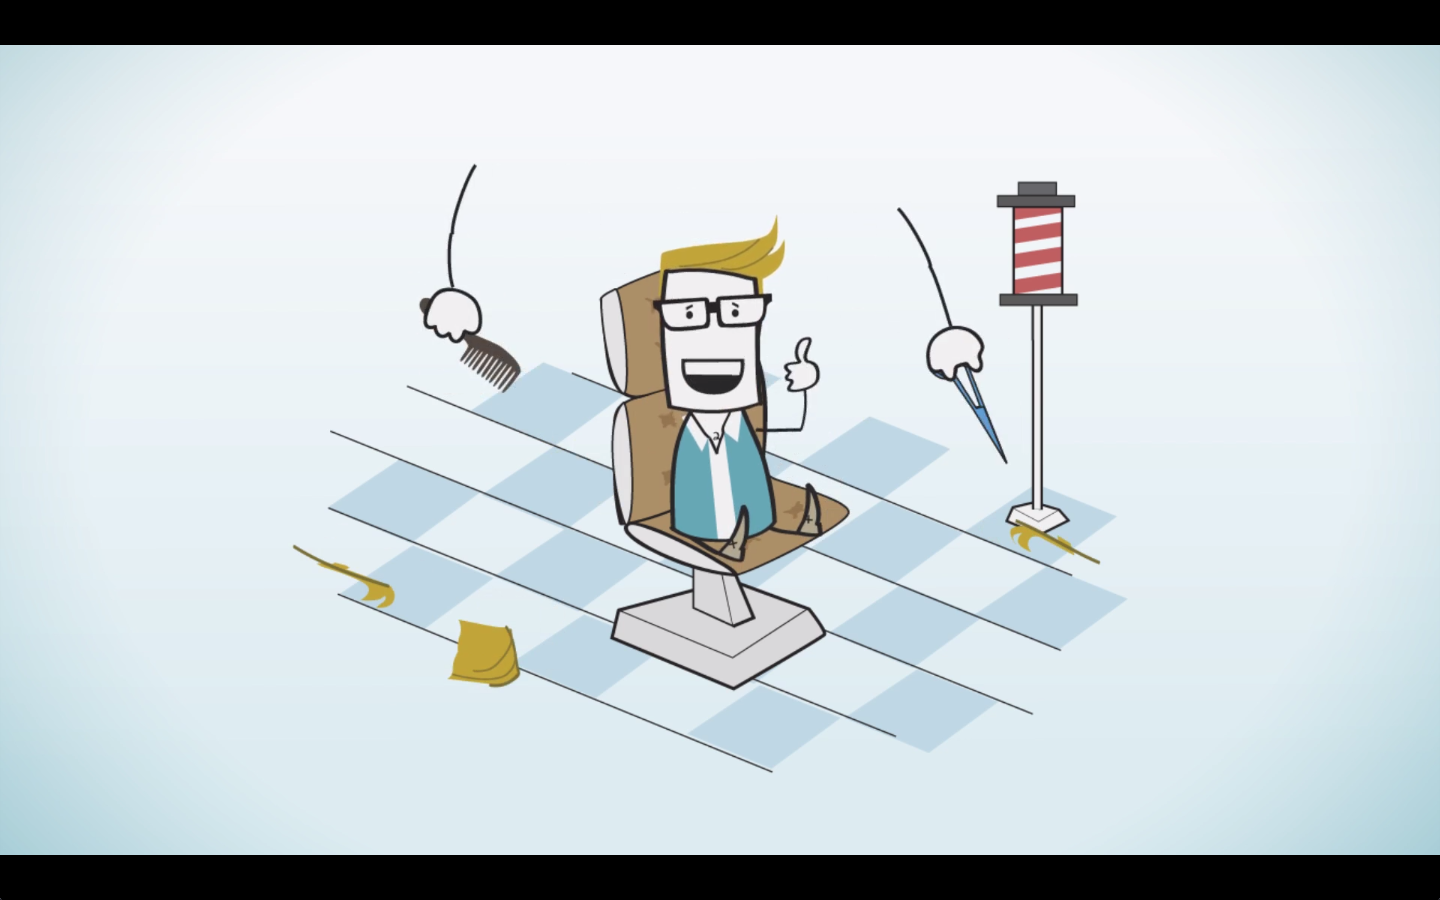 ITV  infographic animation for internal company channel - at Petrol   Characters design, animation and composition.   [Illustrator, After Effects]